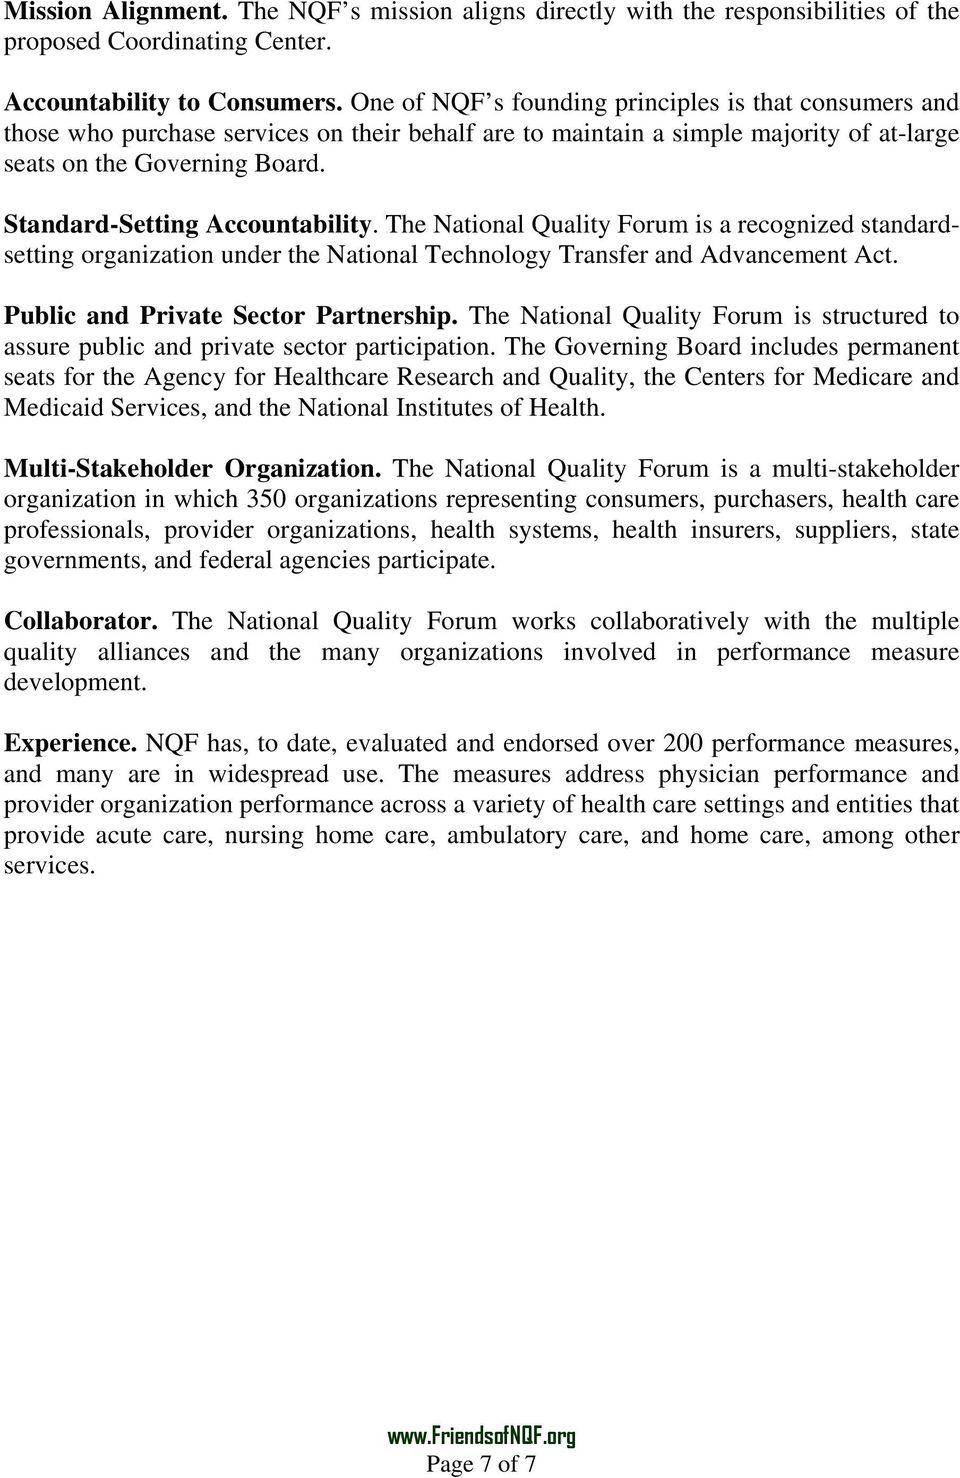 Standard-Setting Accountability. The National Quality Forum is a recognized standardsetting organization under the National Technology Transfer and Advancement Act.